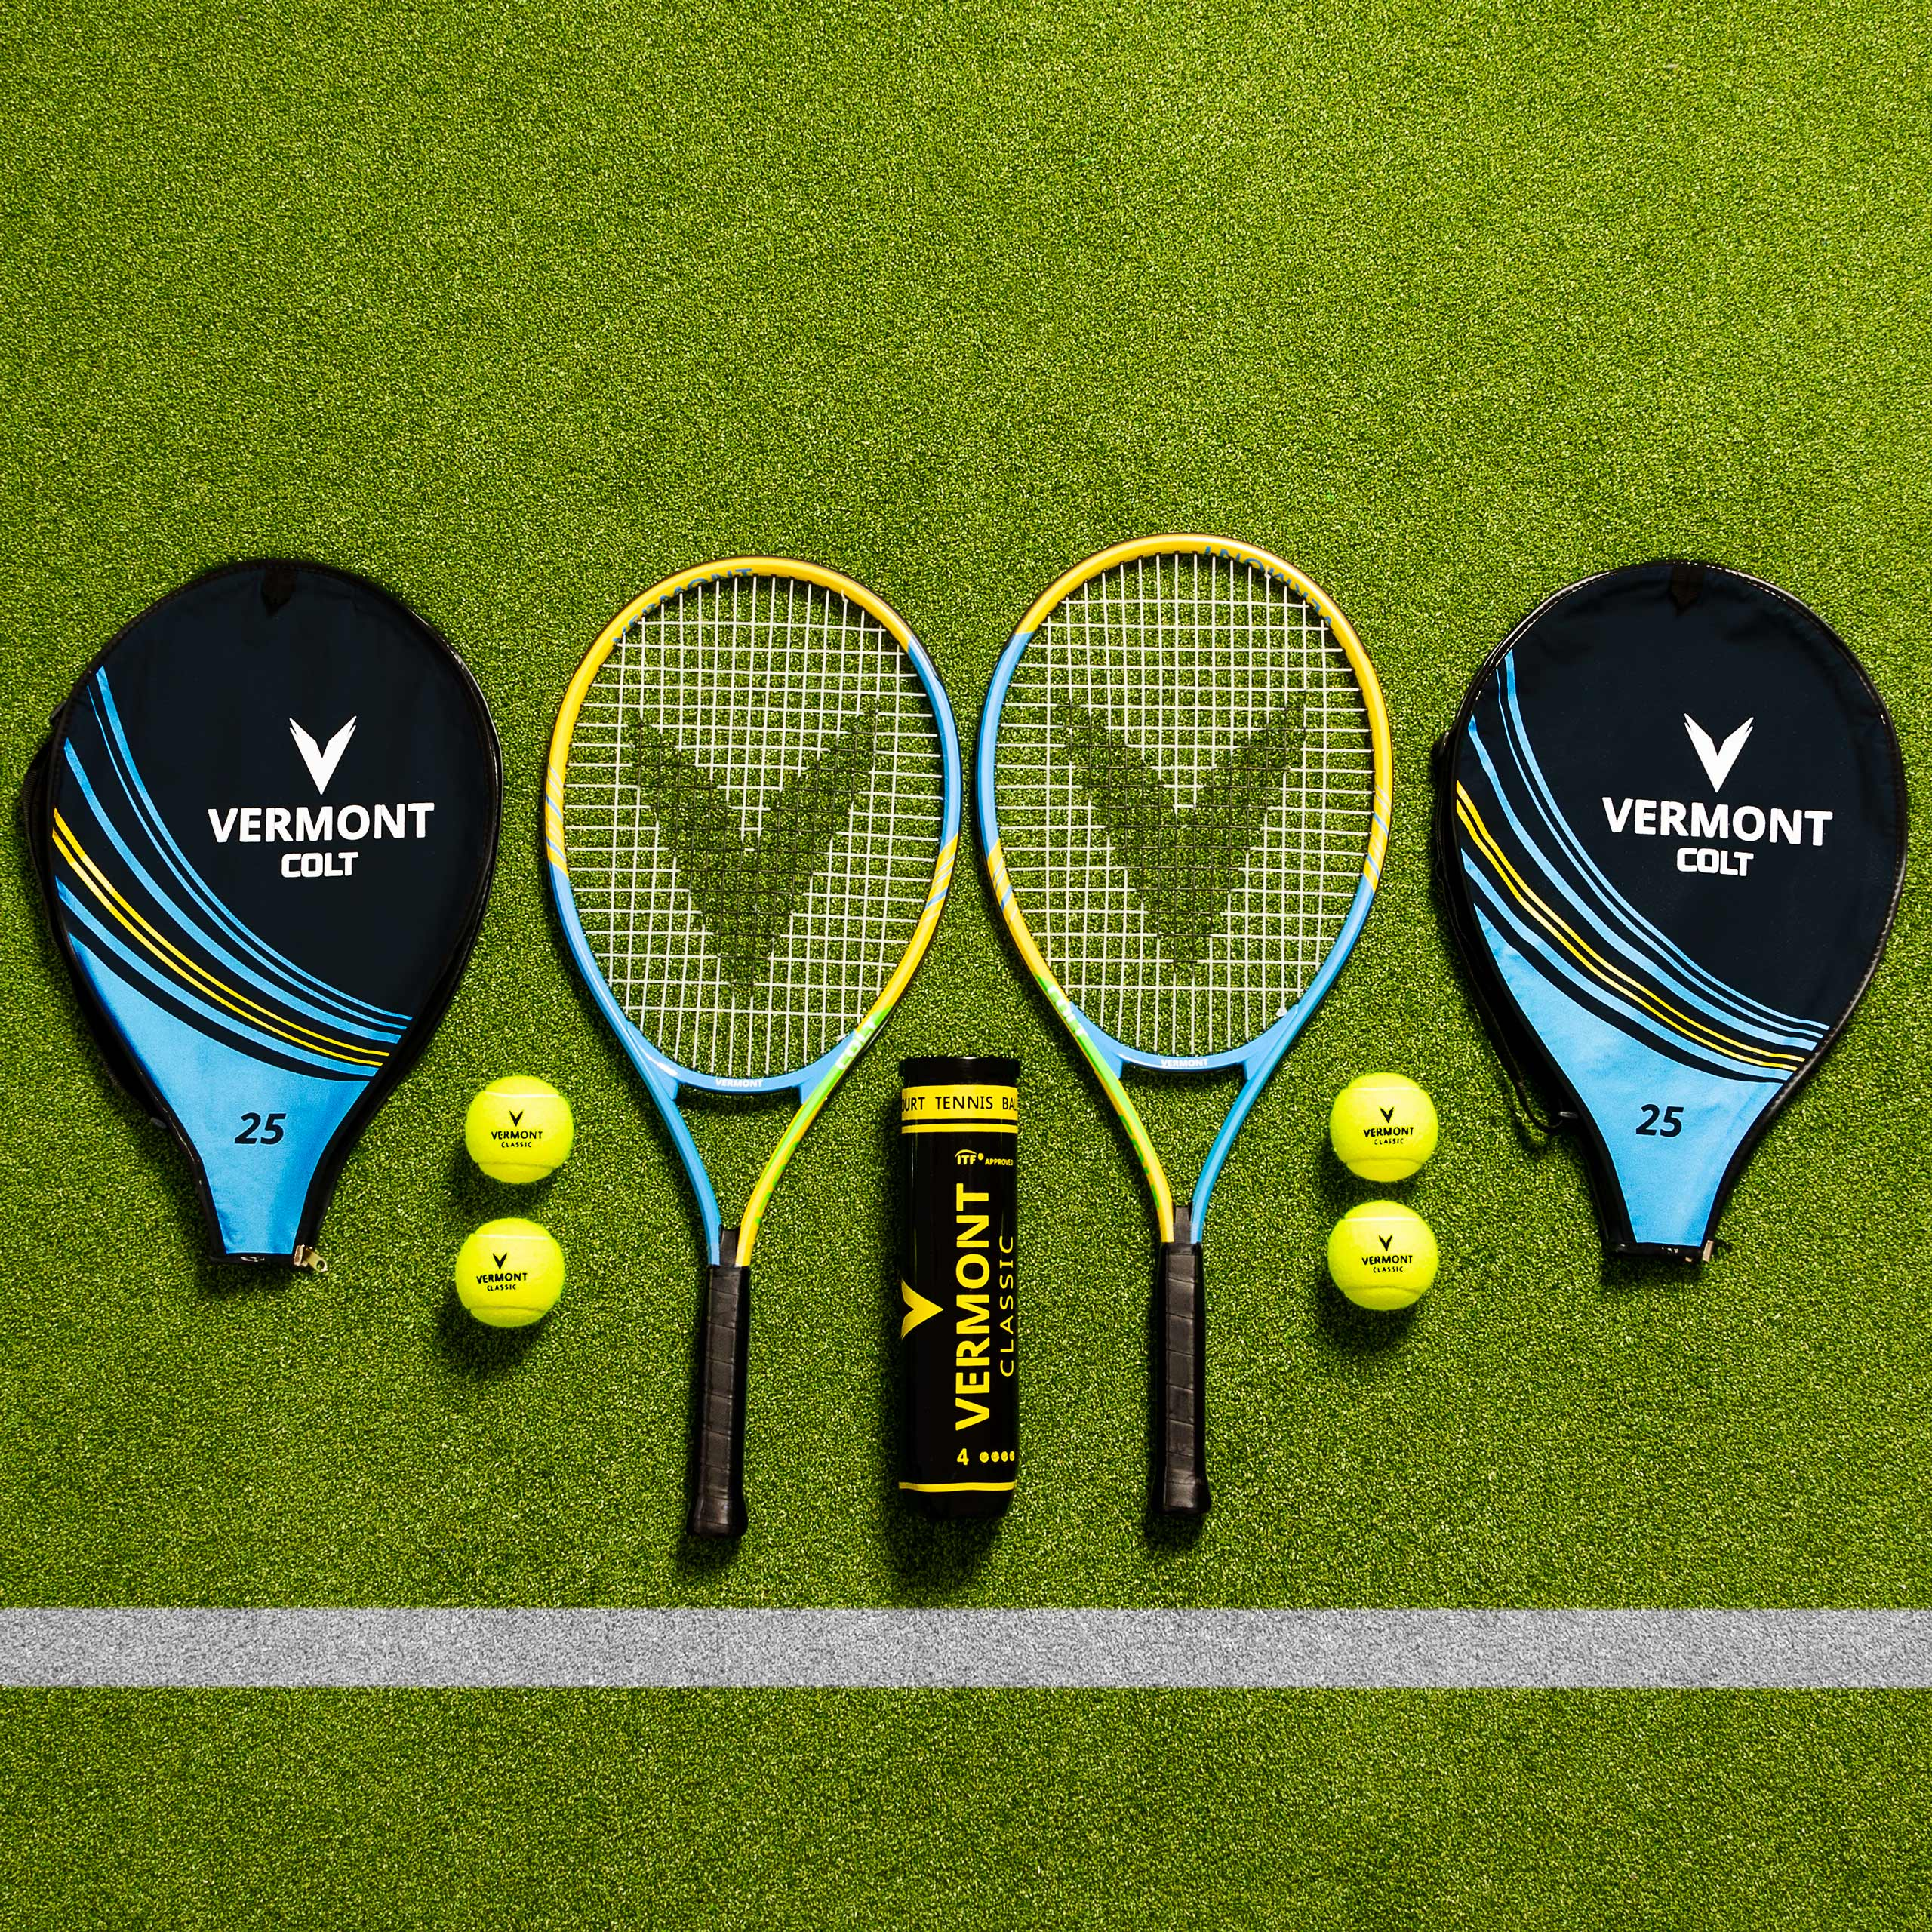 Vermont Tennis Racket & Ball Set | 2 Payers Singles Tennis